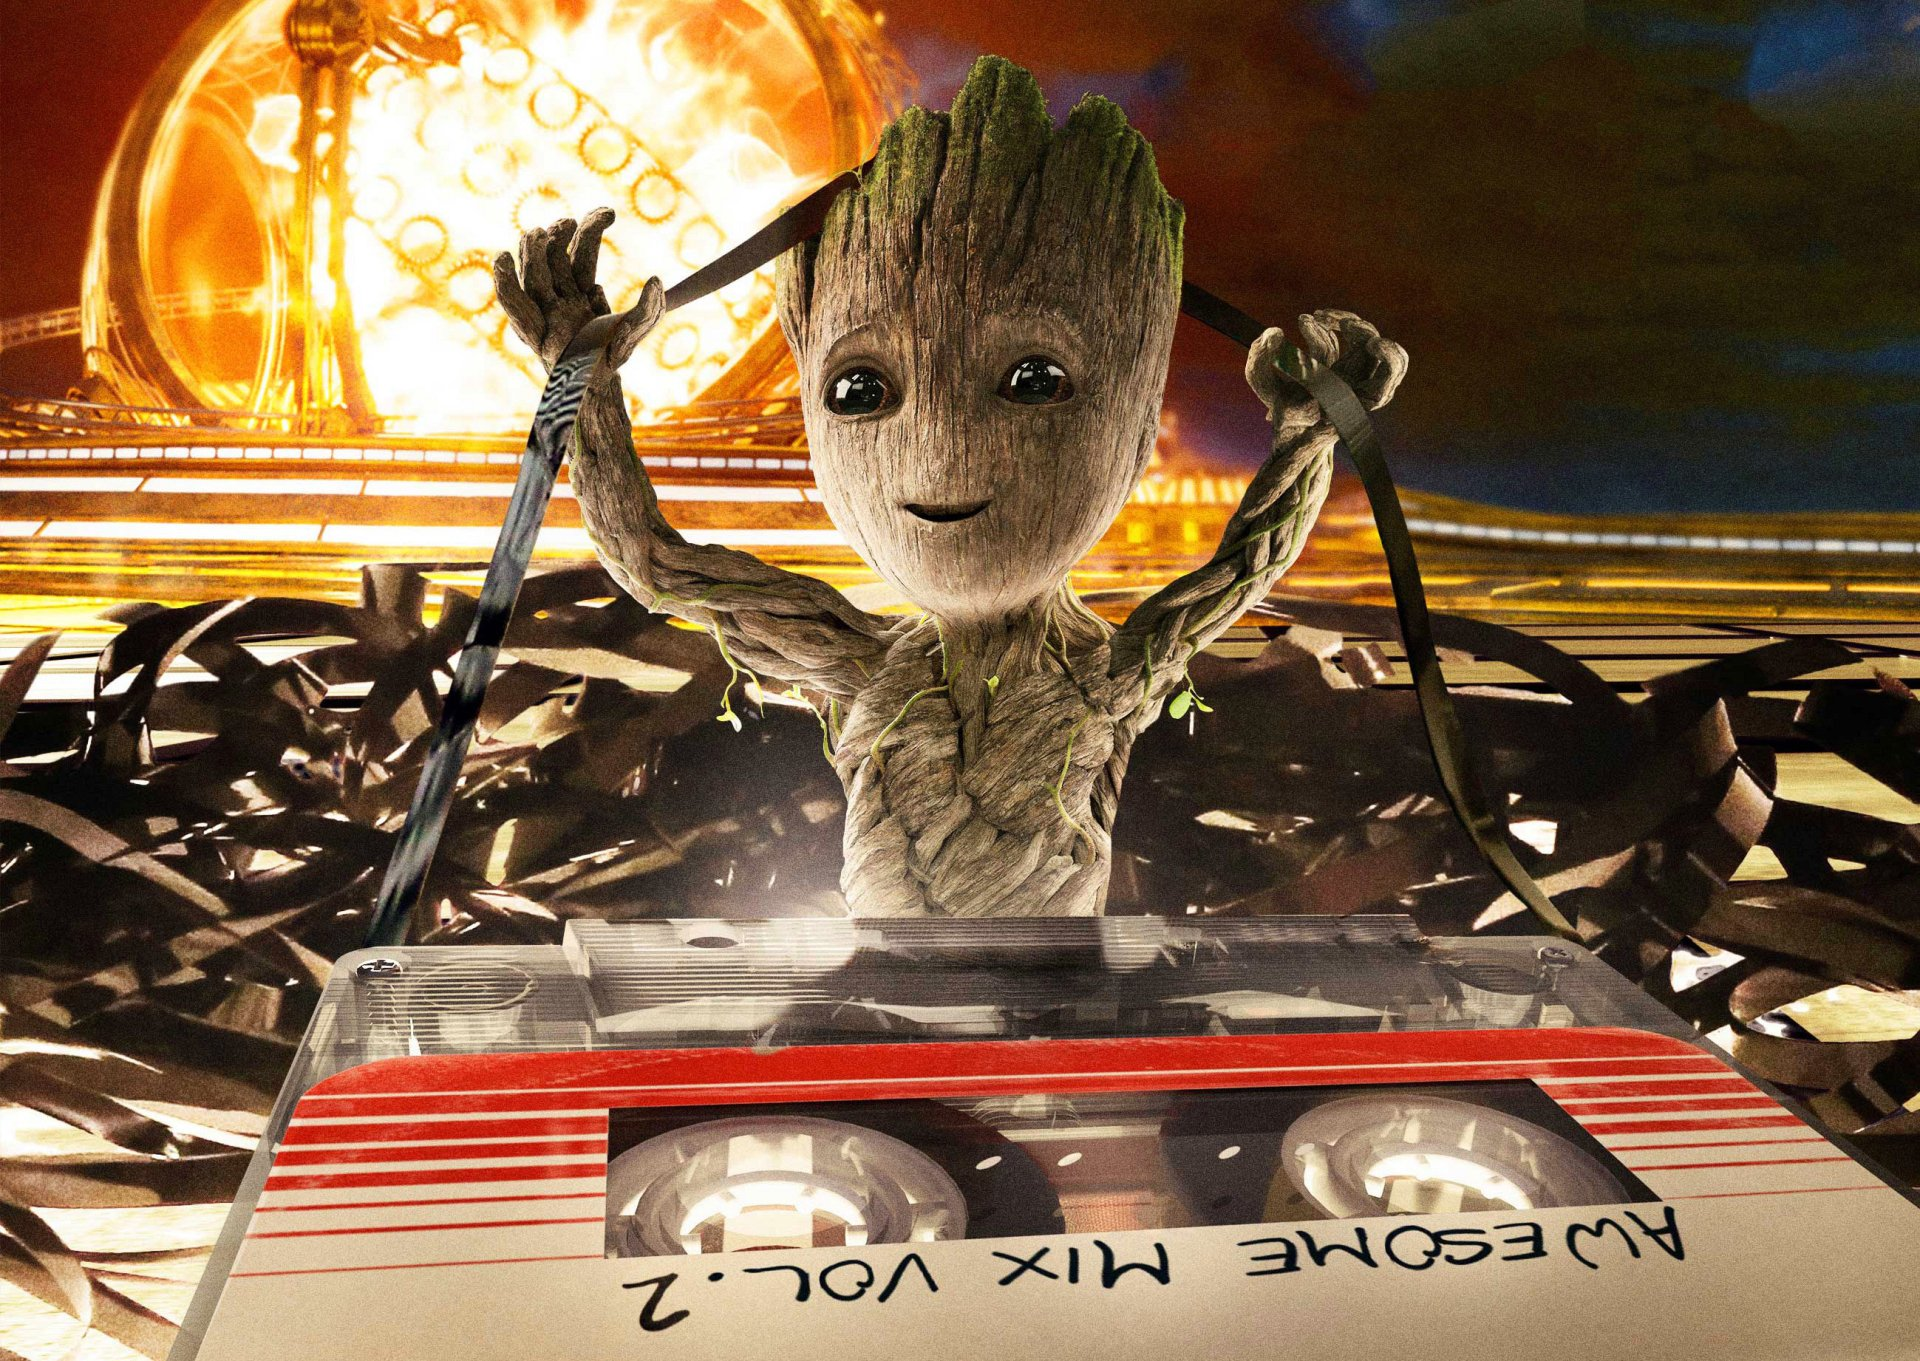 Guardians Of The Galaxy Vol 2 Wallpapers Backgrounds Images